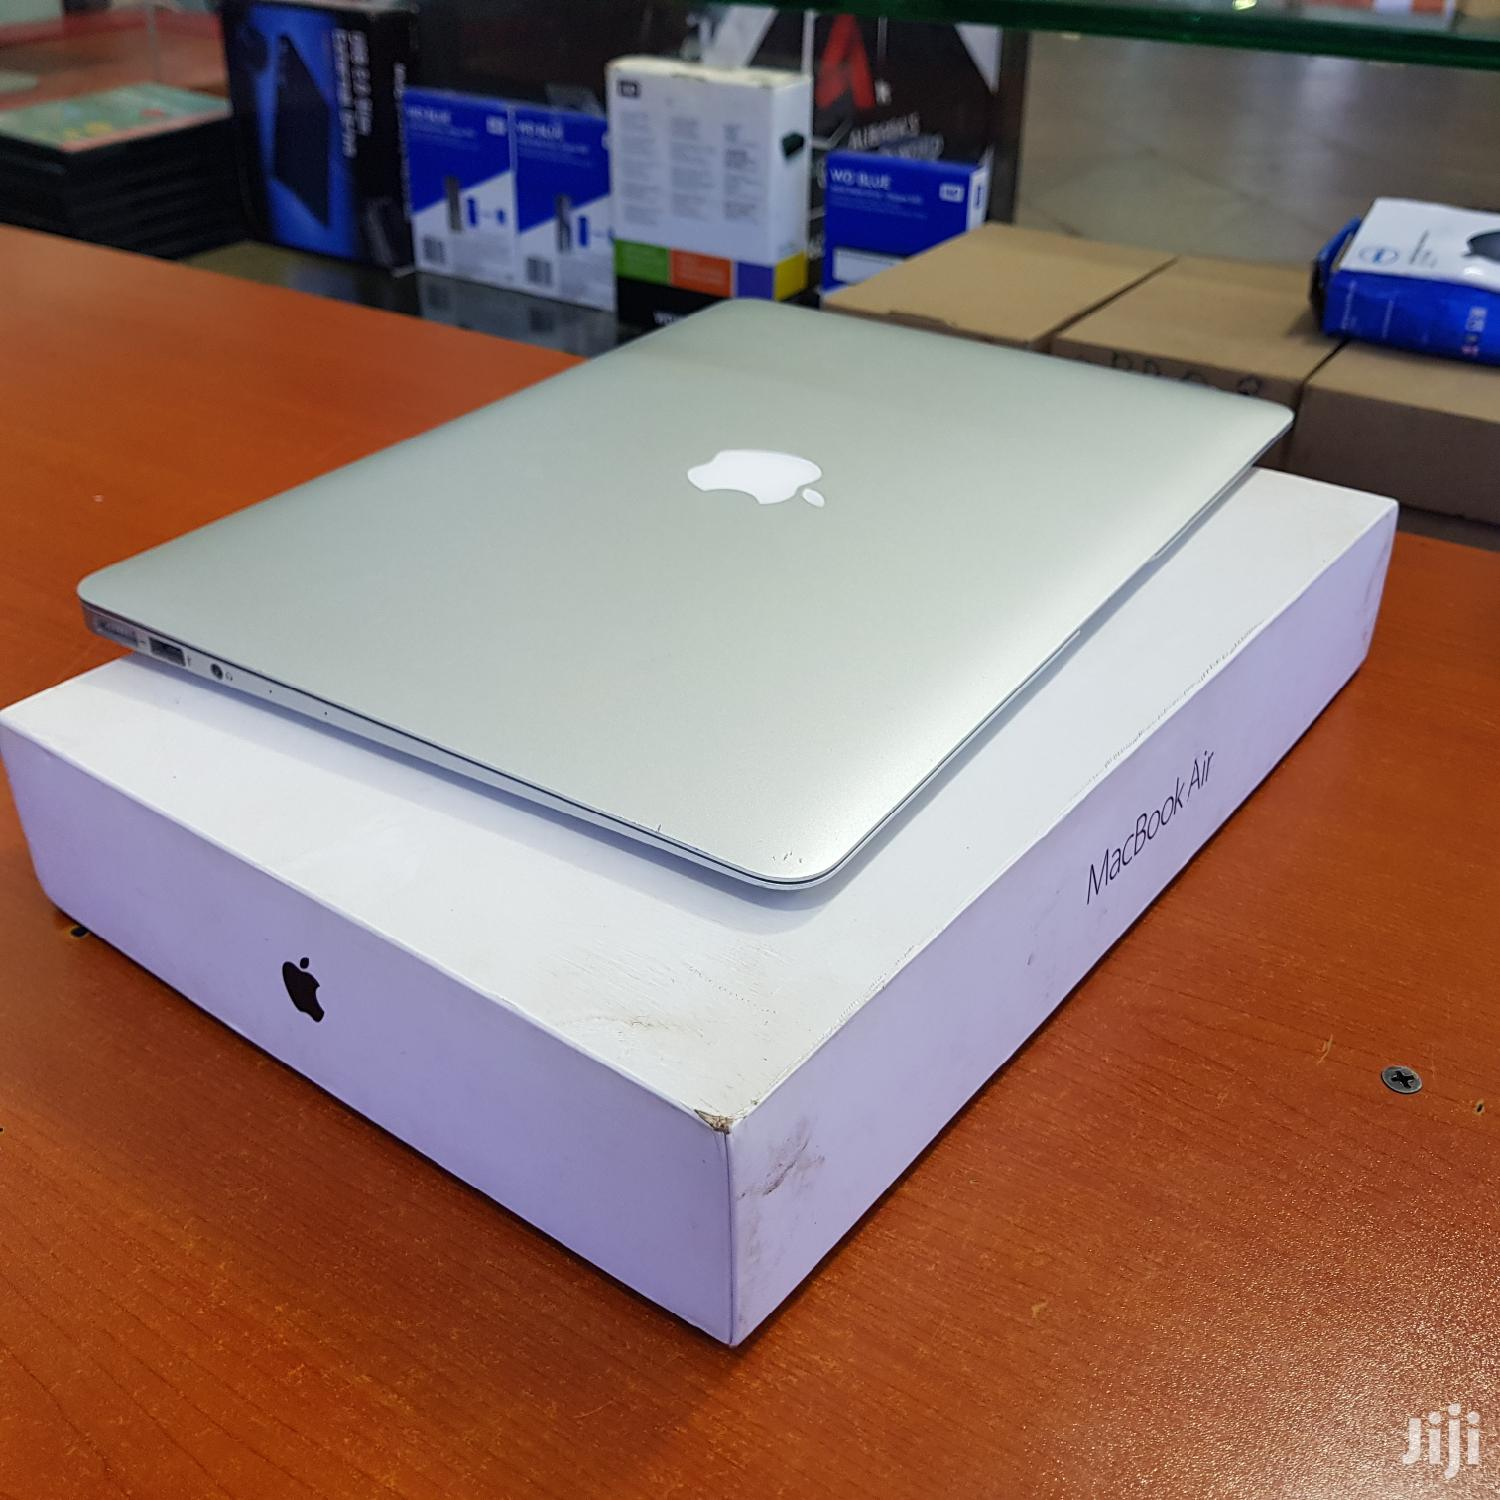 Apple Macbook Air 13 Inches 256 Gb Ssd Core I5 8 Gb Ram | Laptops & Computers for sale in Kampala, Central Region, Uganda